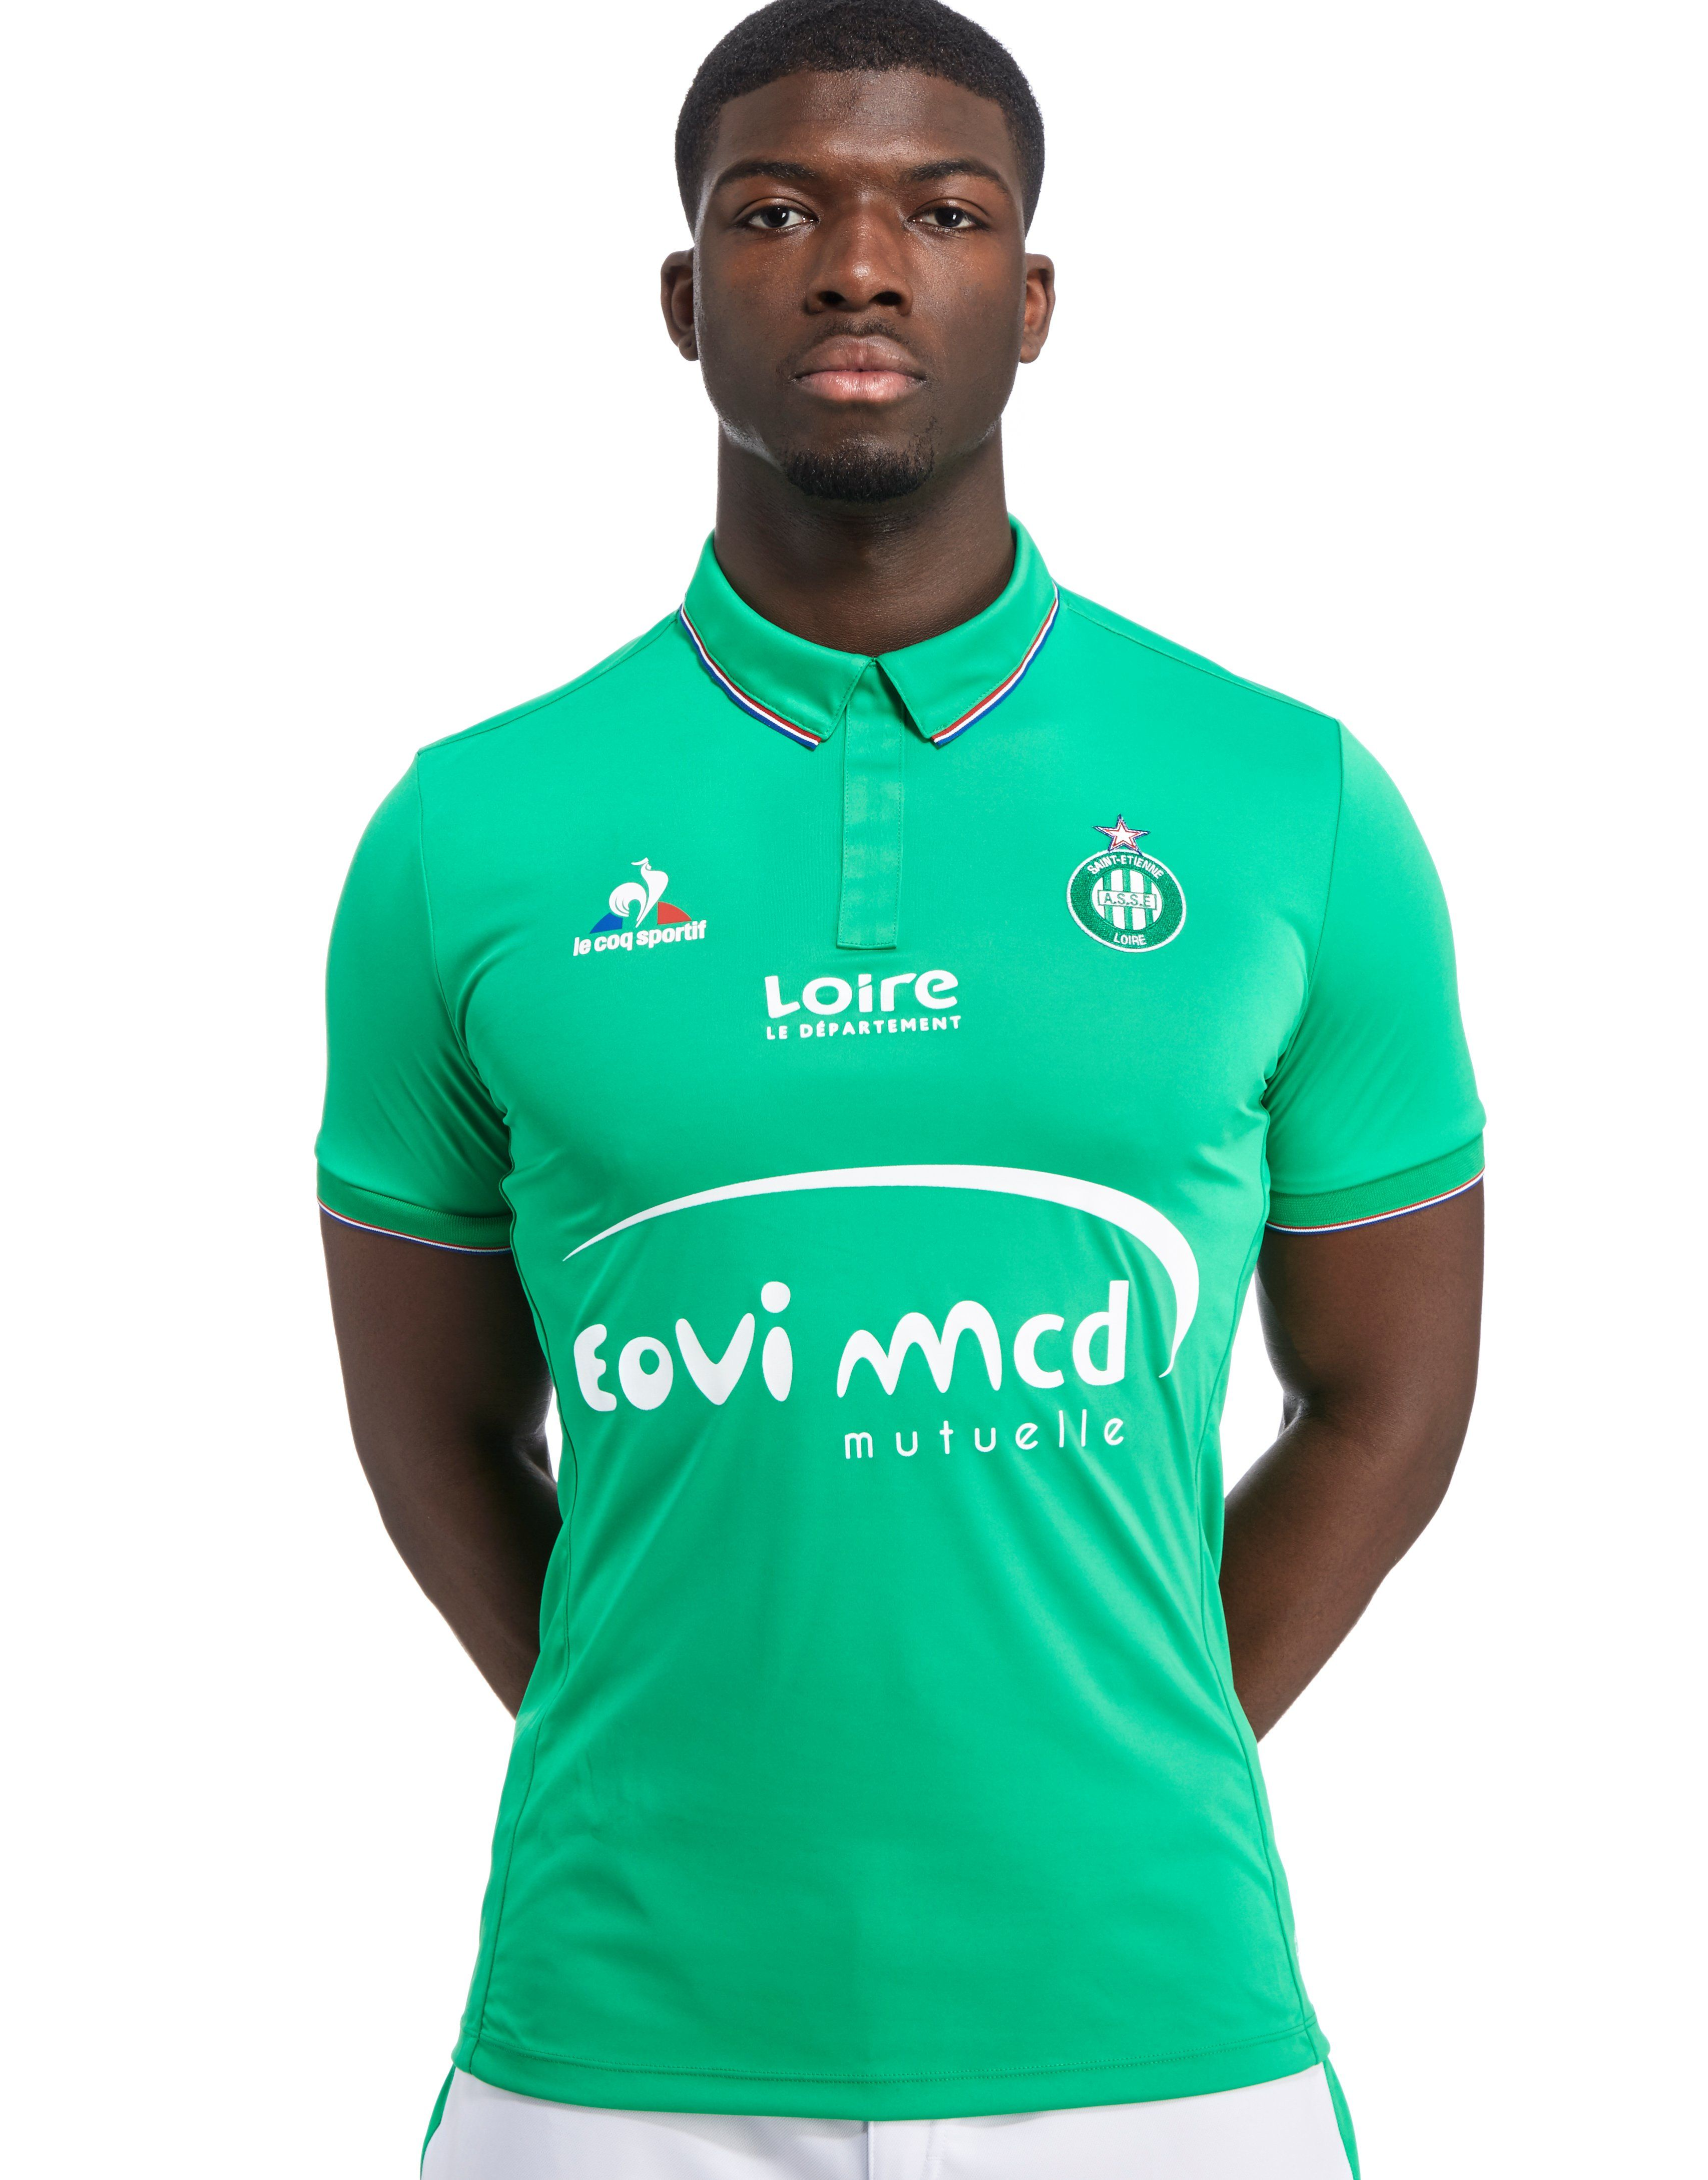 e8779ab63b393 Le Coq Sportif AS Saint Etienne 2016/17 Home Shirt | JD Sports outlet ...